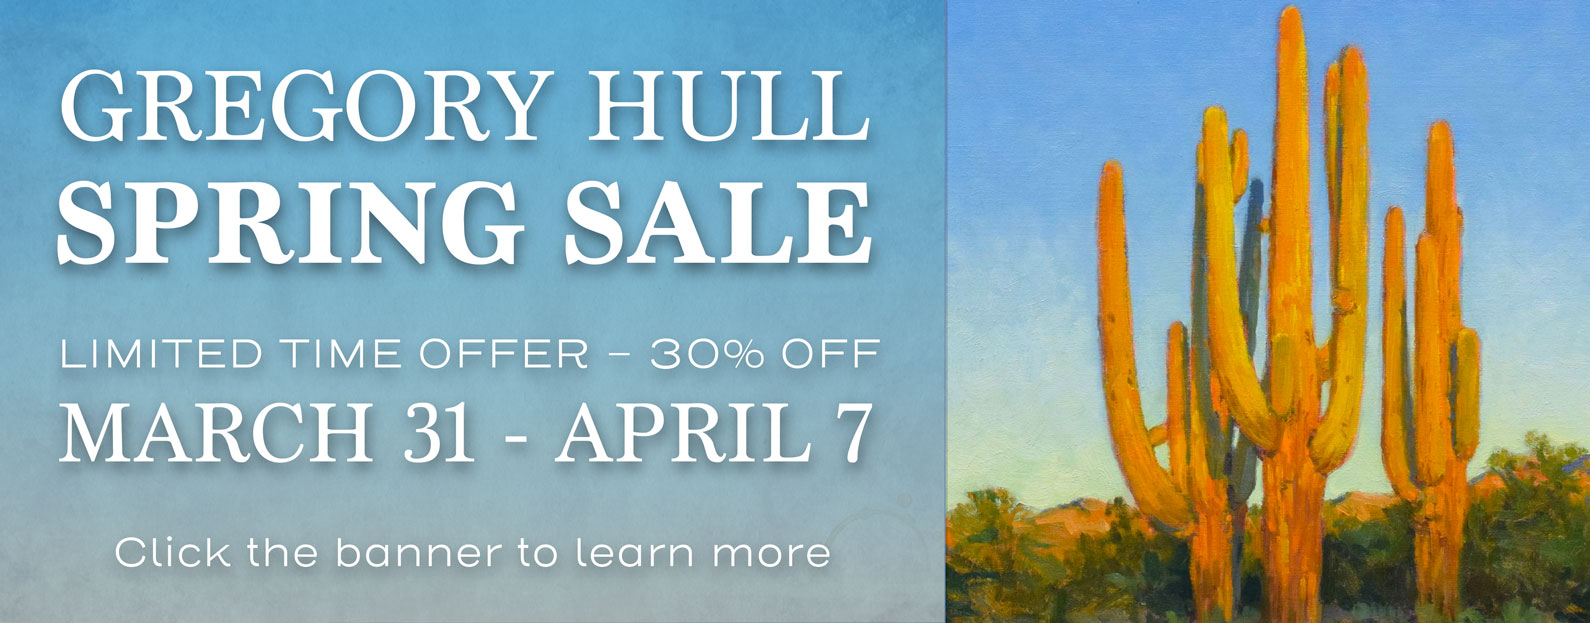 Gregory Hull Spring Sale 30% off through April 7th